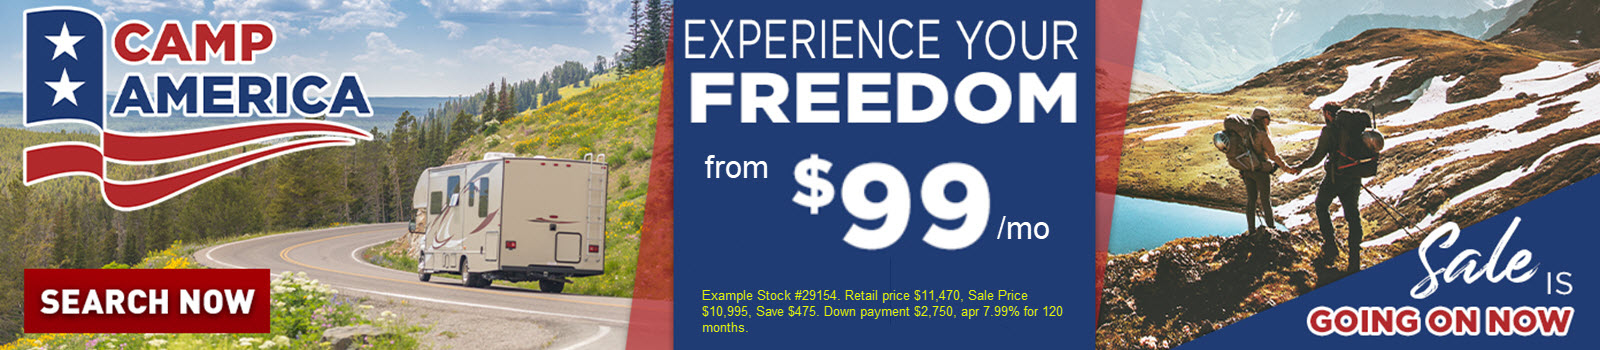 Experience Your Freedom